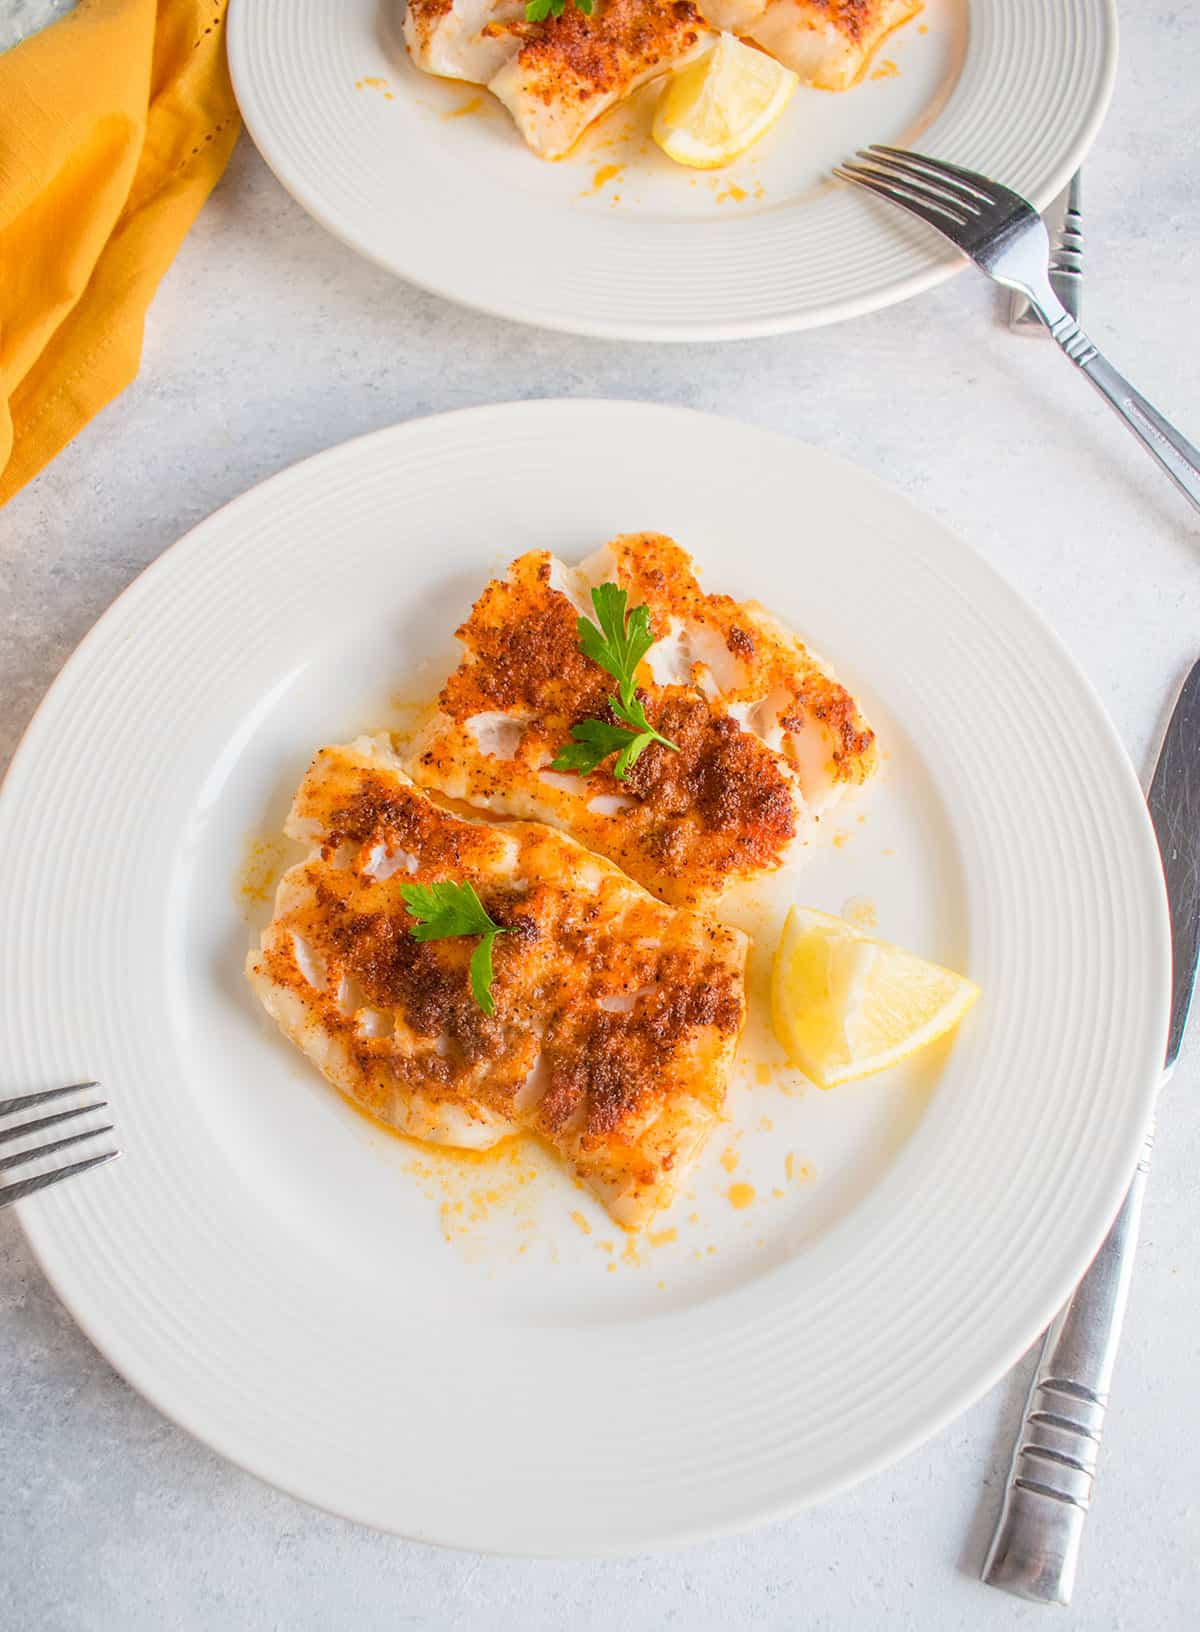 cod with paprika on two plates with lemon, silverware